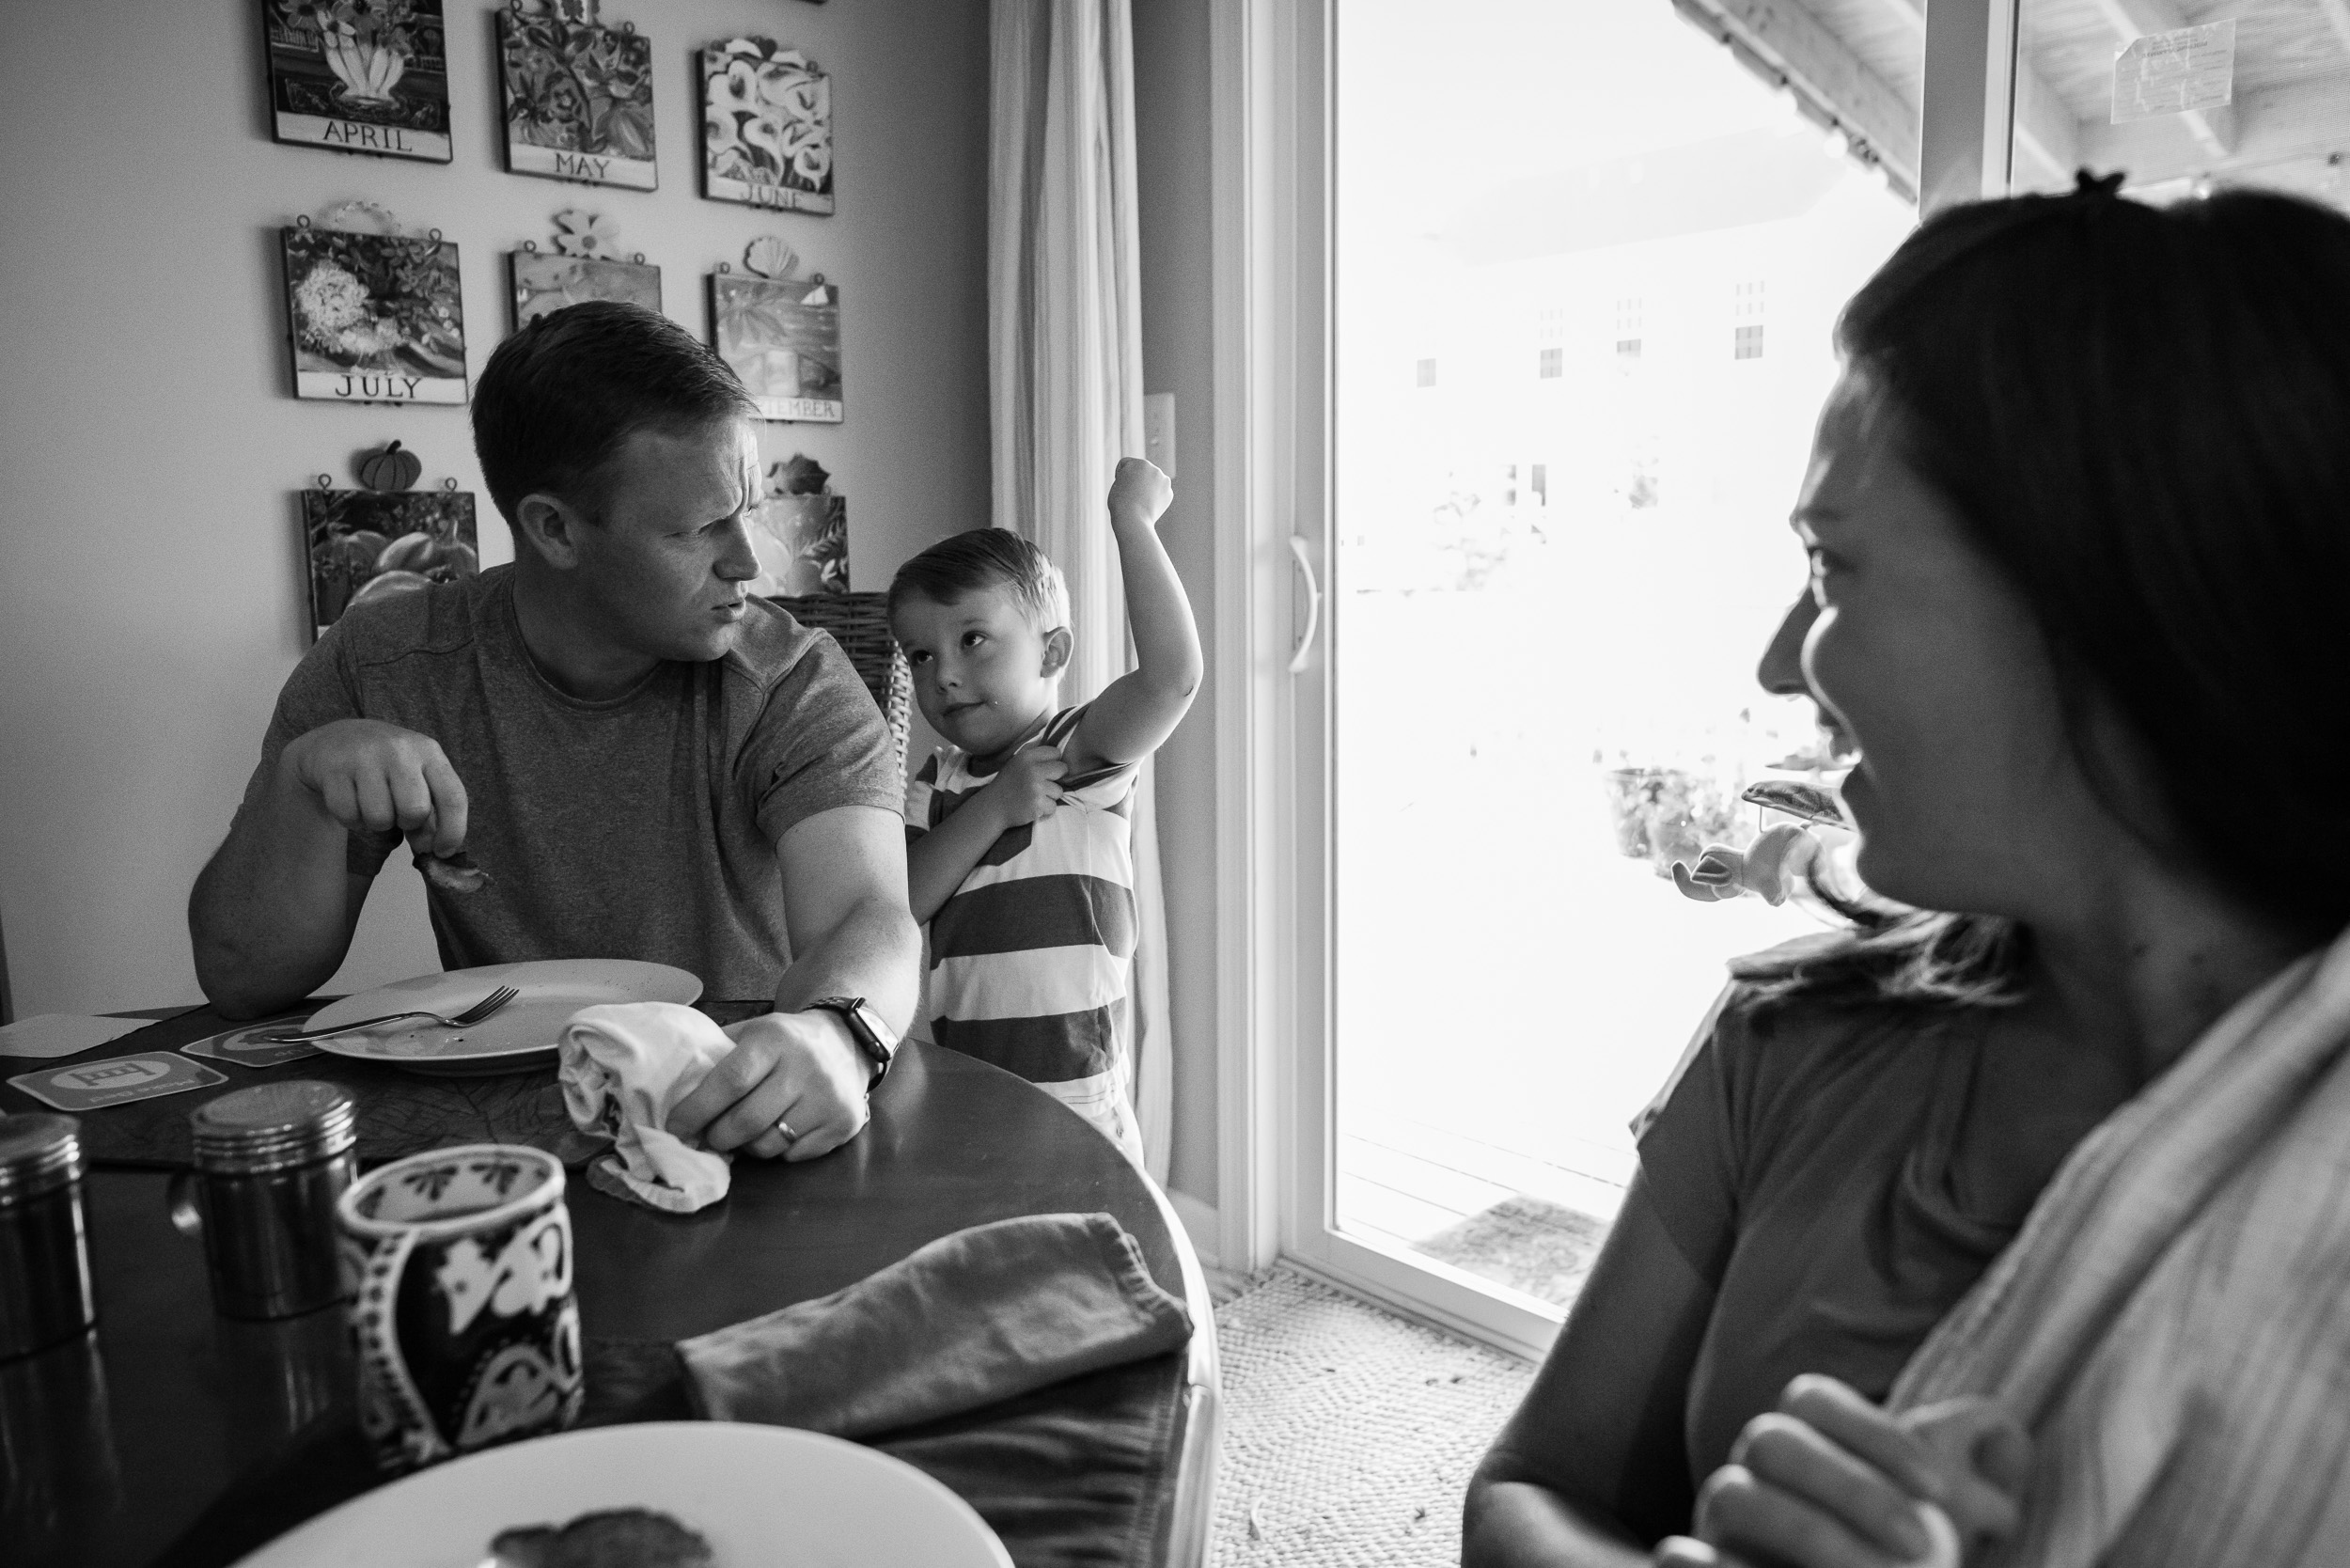 Boy showing off his muscle at family breakfast by Northern Virginia Photographer Nicole Sanchez